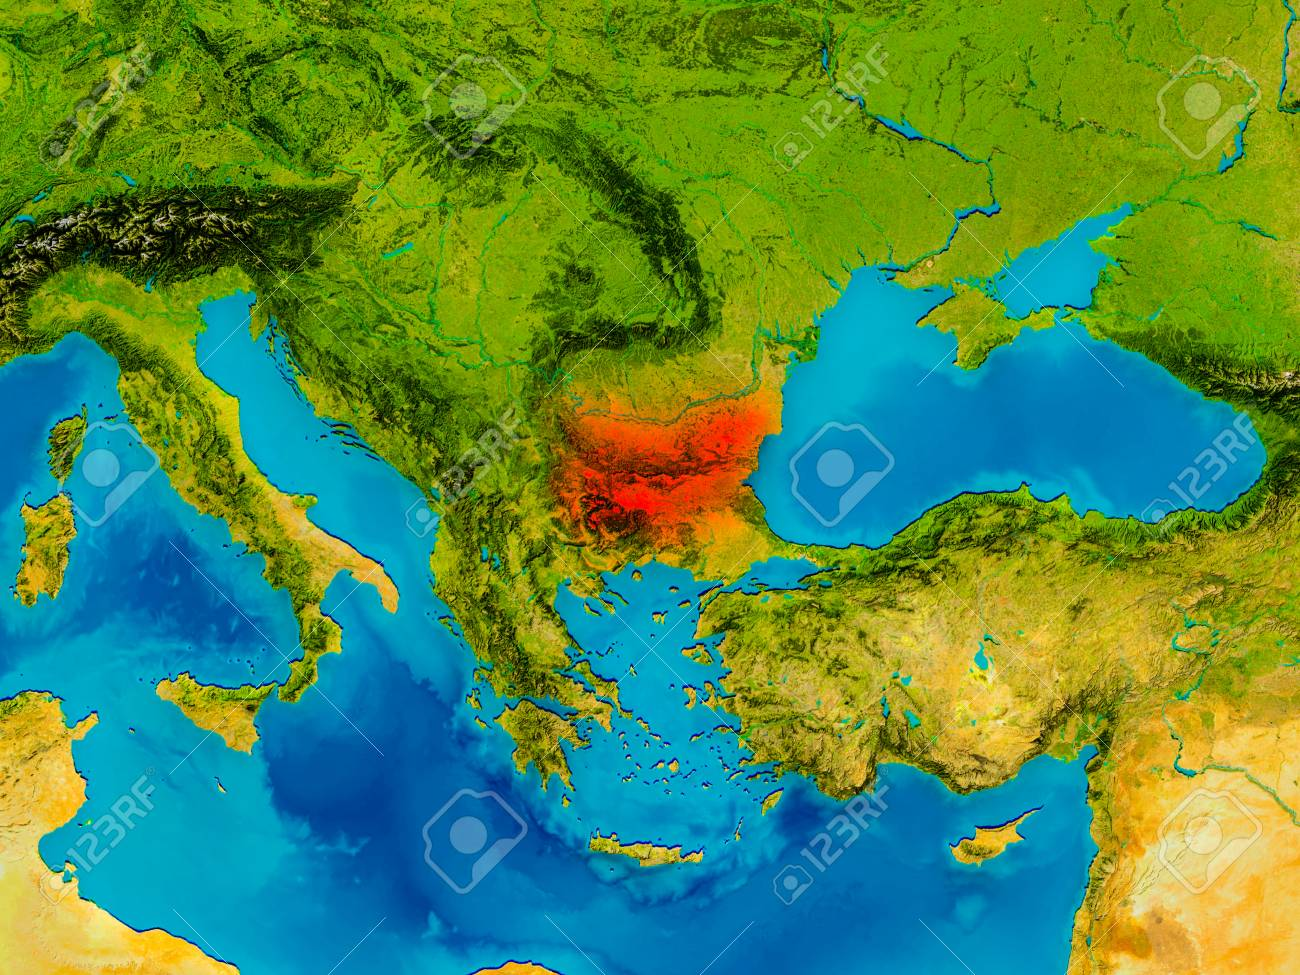 Bulgaria Highlighted In Red On Physical Map 3D Illustration Stock